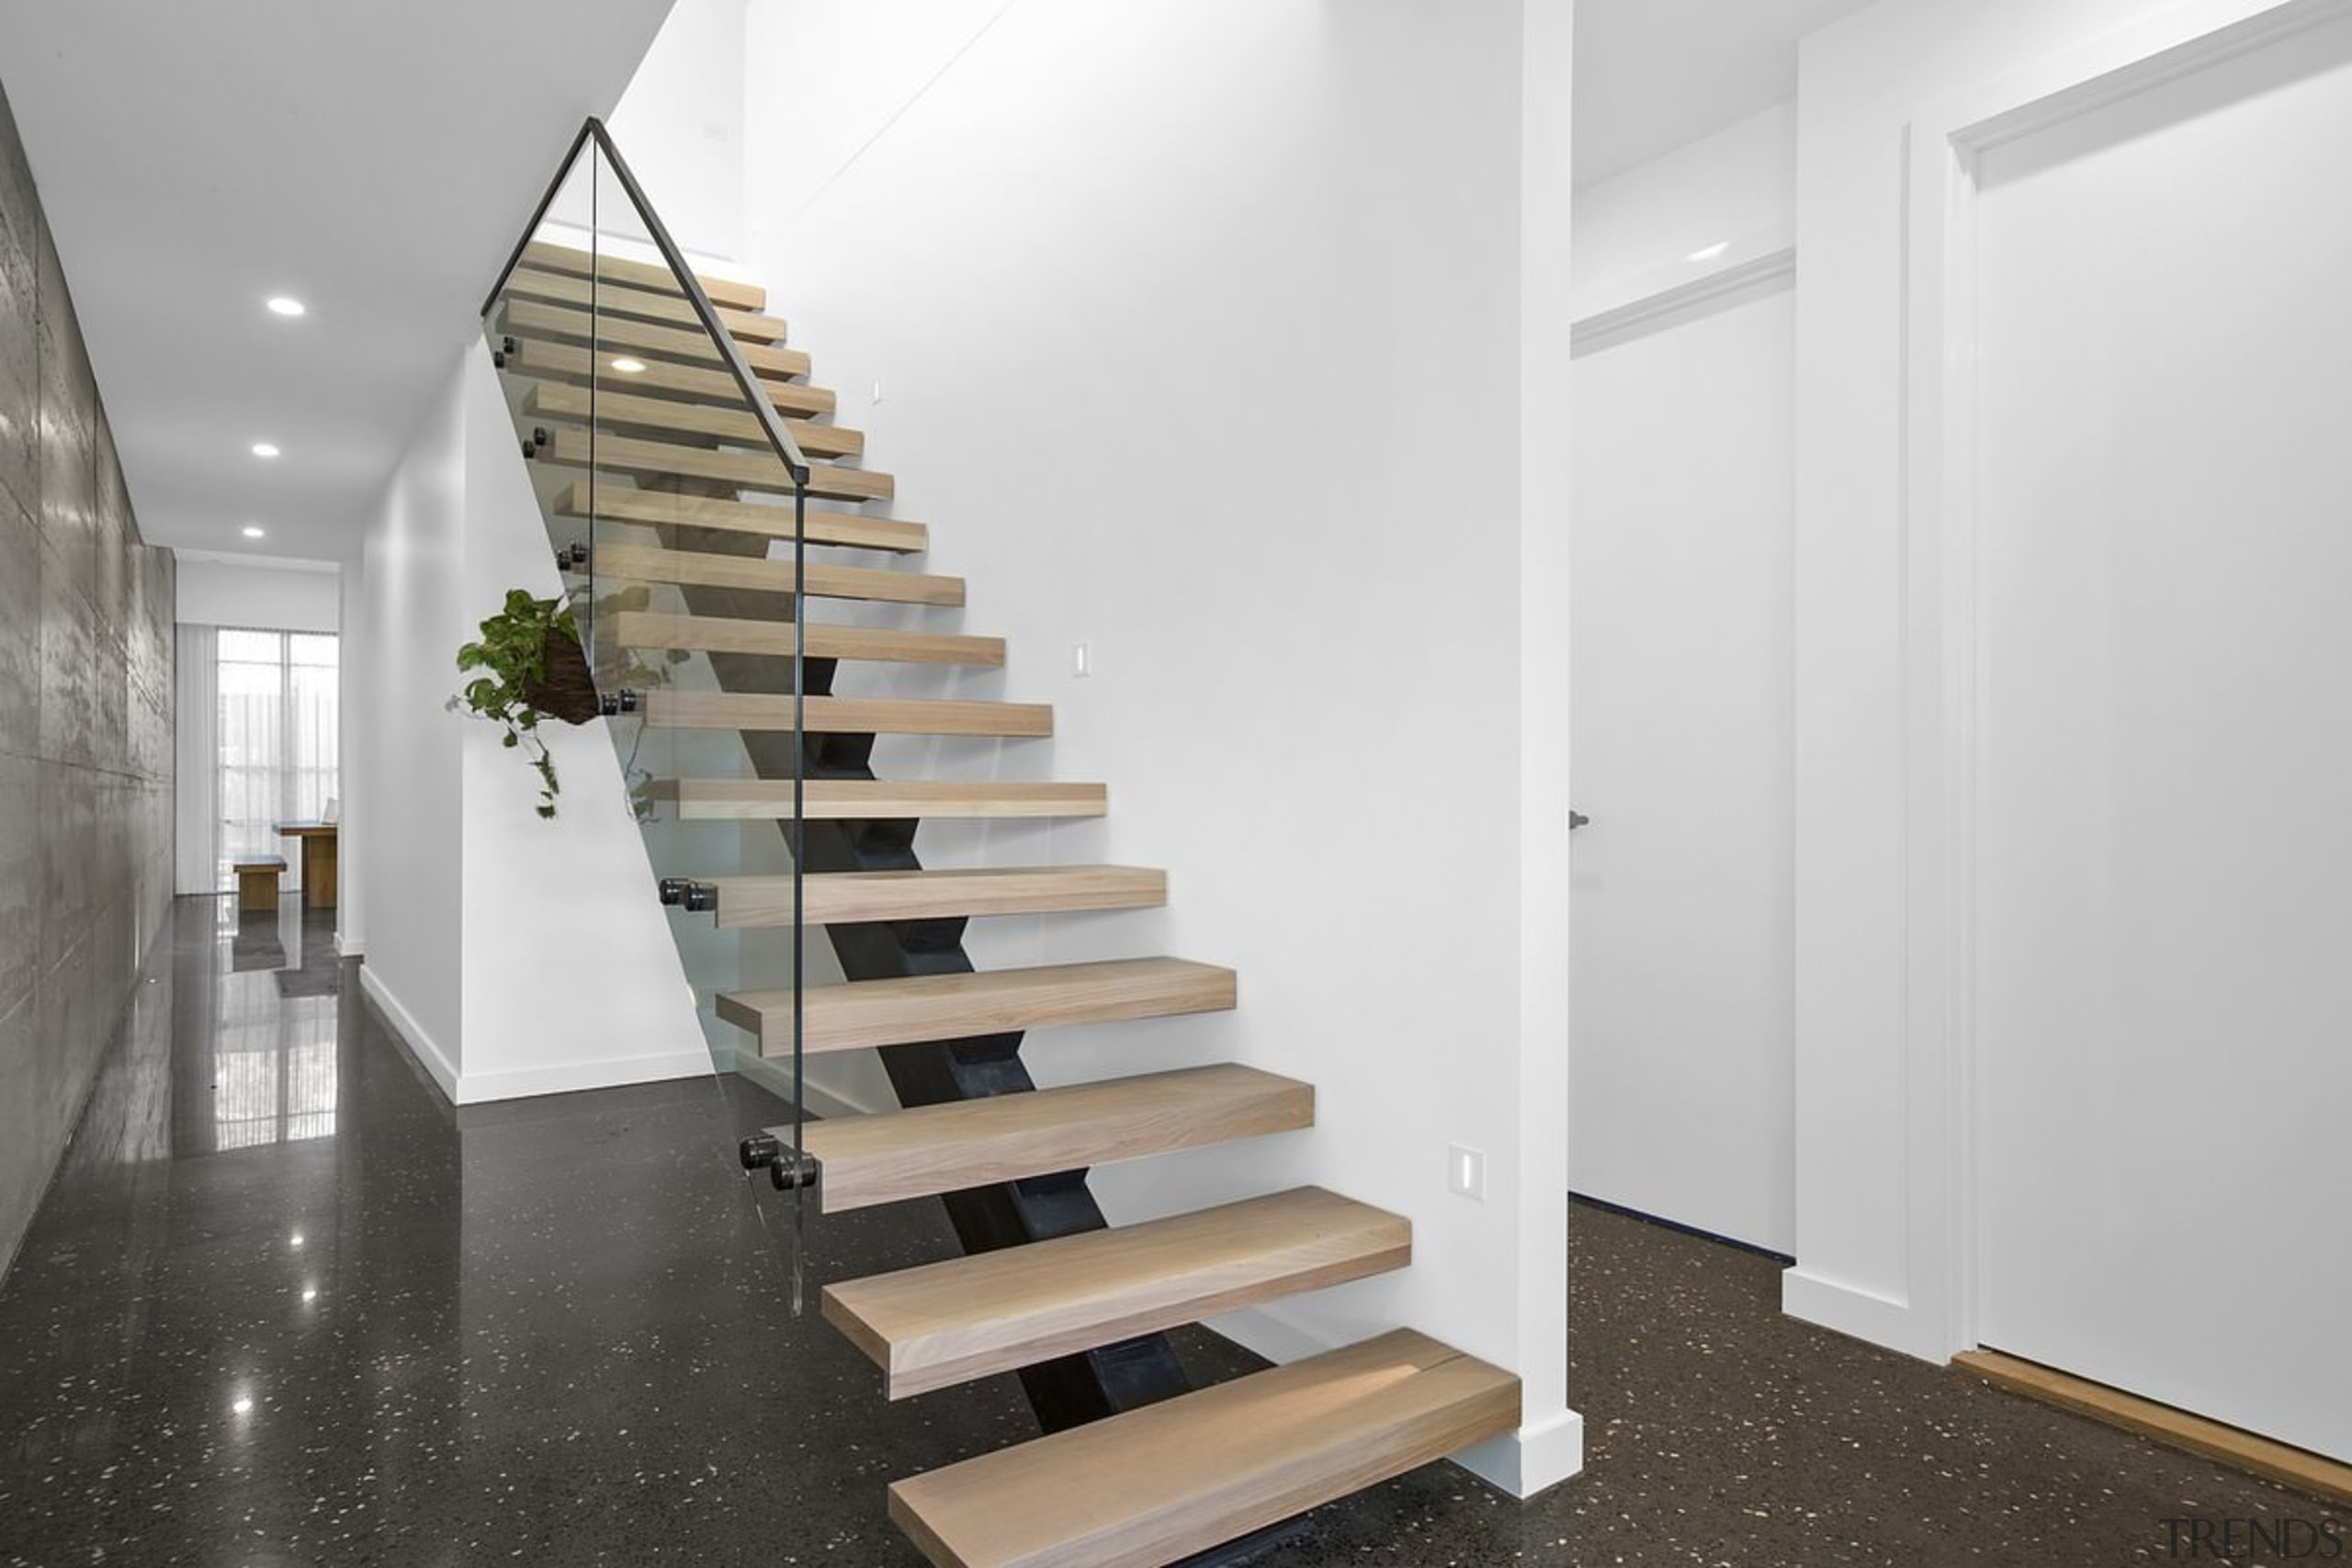 A floating stair with glass balustrade runs up architecture, daylighting, floor, flooring, handrail, interior design, product design, stairs, white